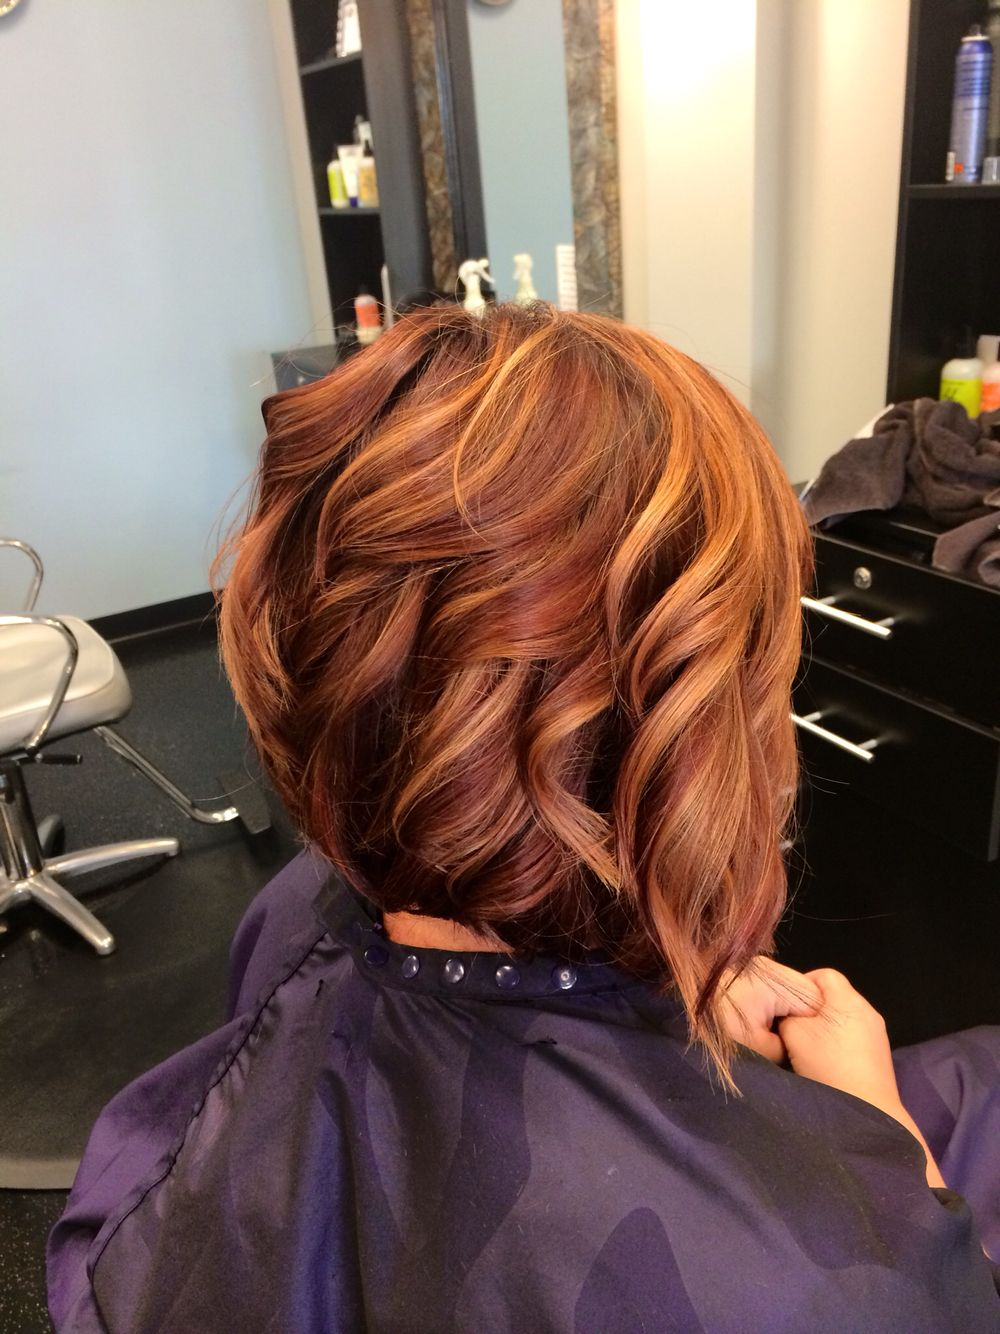 My New Hair Red With Copper Highlights Angled Bob With